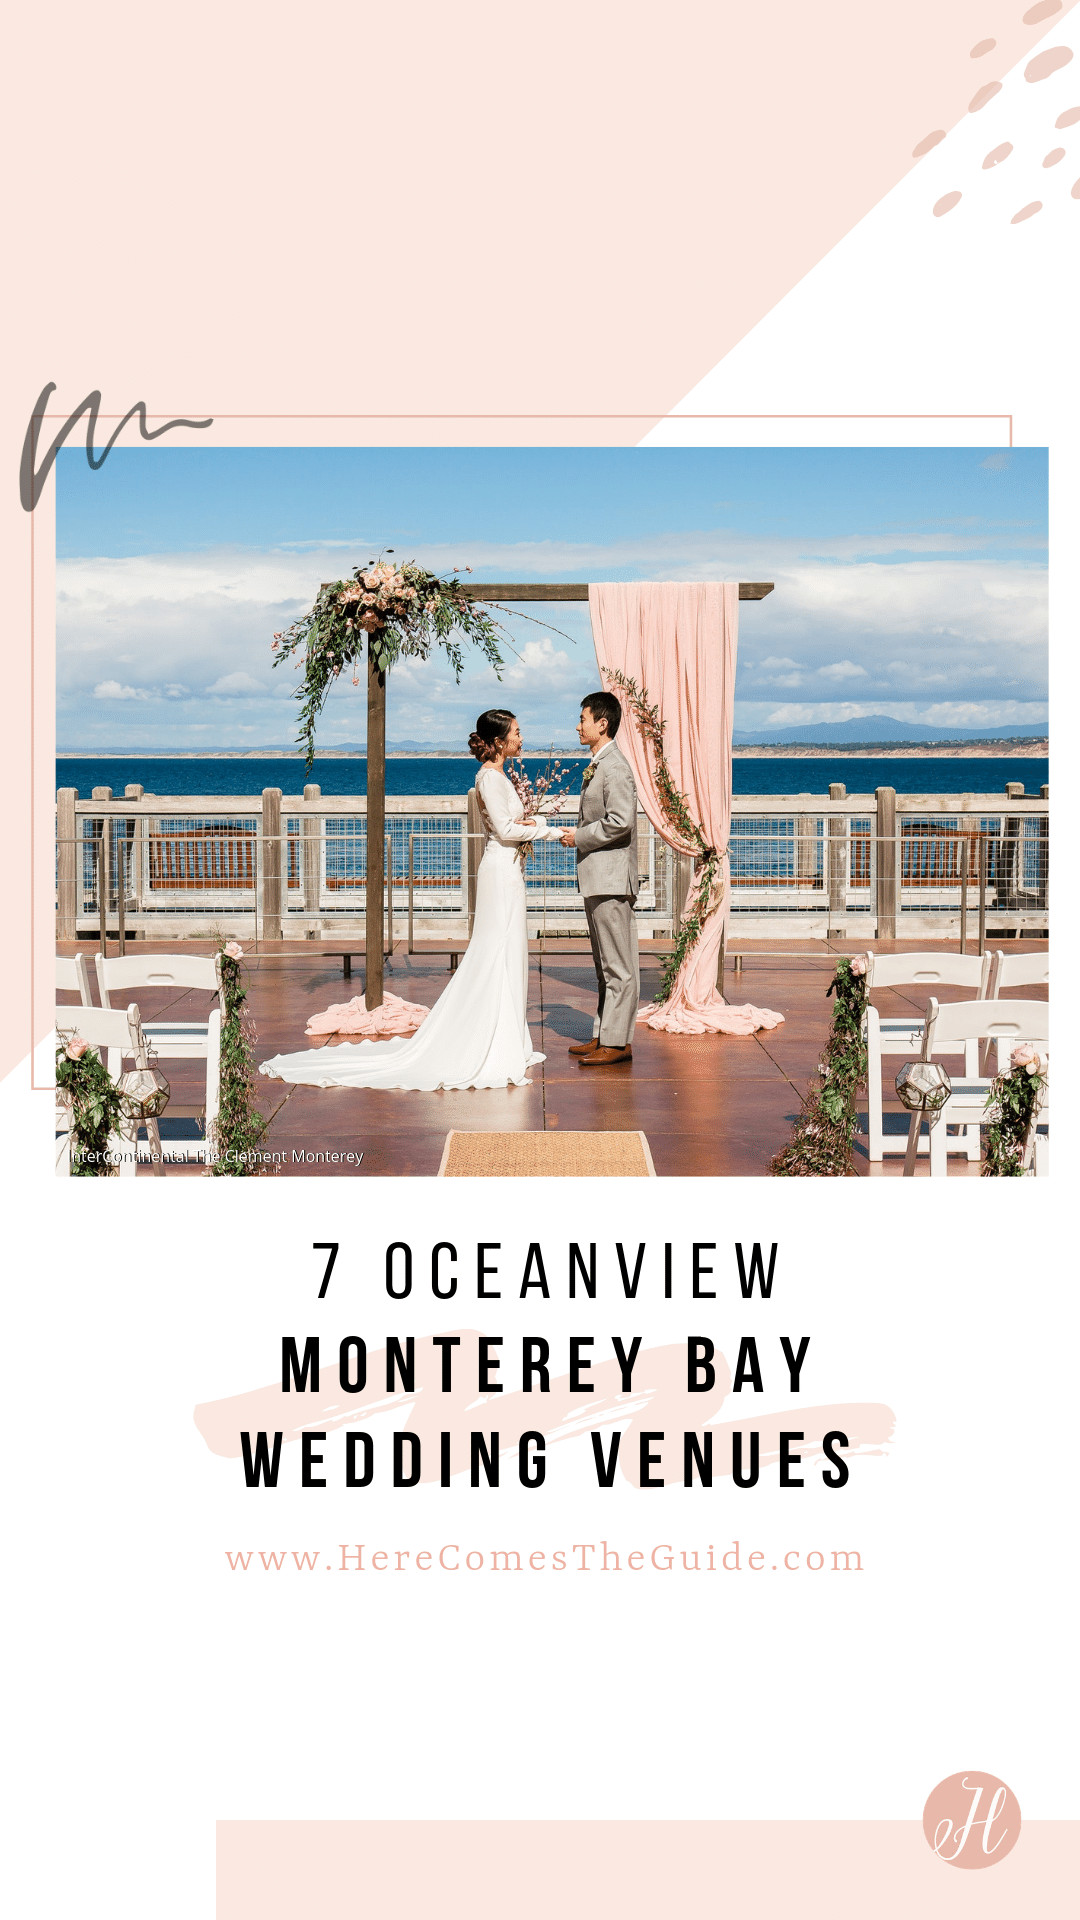 9 Wedding Venues On The Monterey Bay With Ocean Views See Prices Northern California Wedding Venues Northern California Wedding Wedding Venues Beach